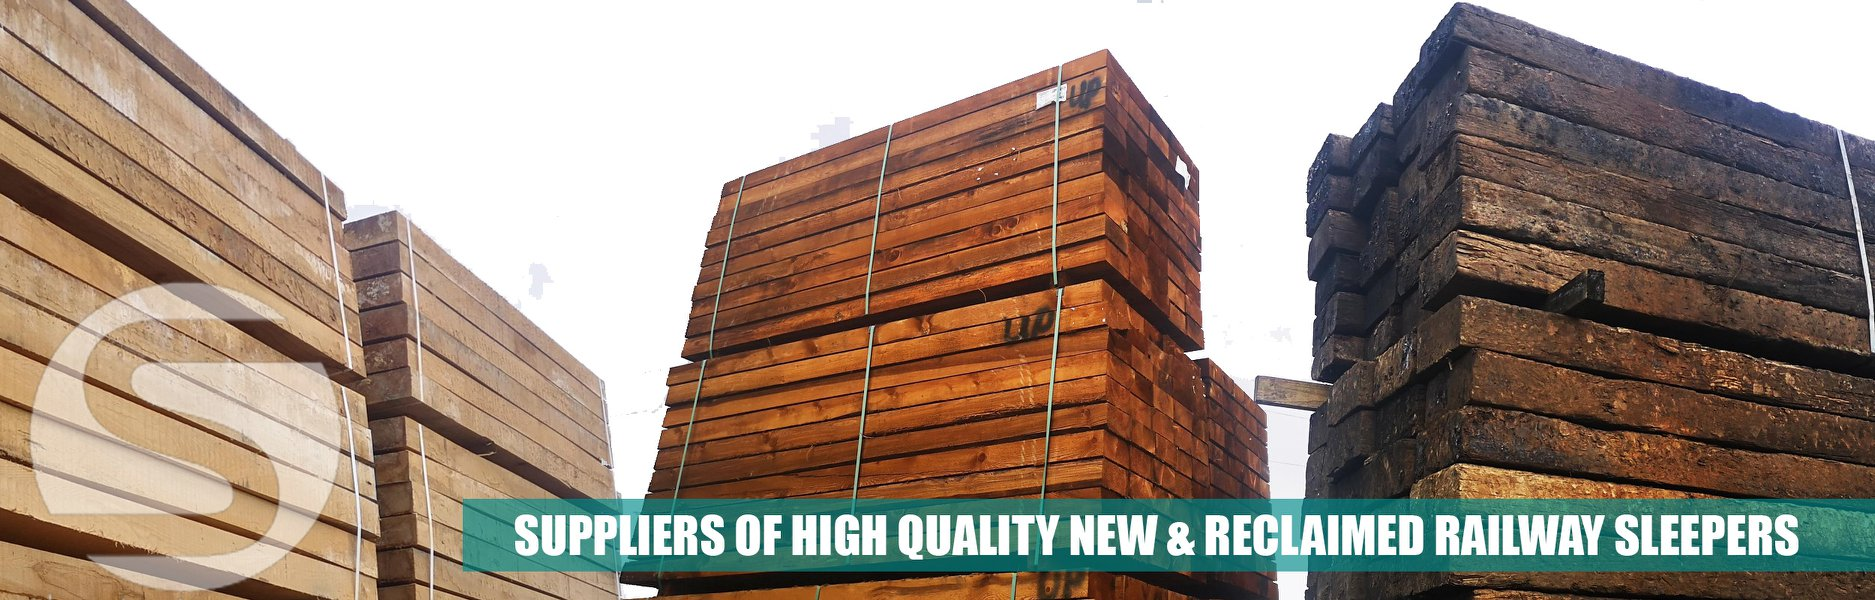 The Strata Group Ireland Railway Sleepers Timber Products